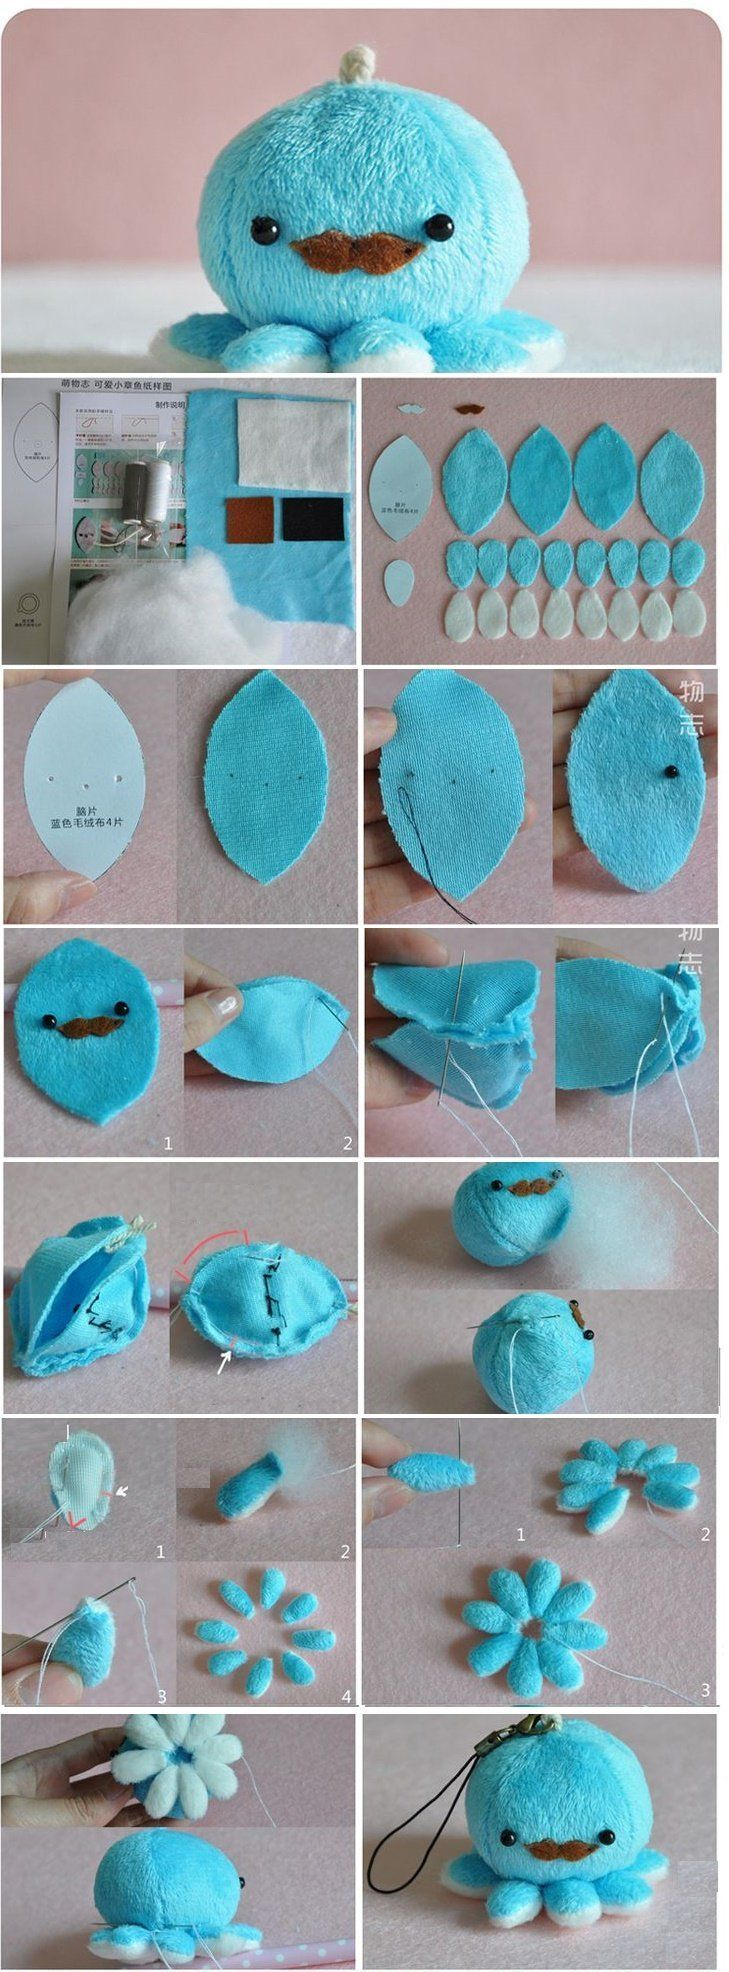 20 dolls and stuffed animals you want to make! (Spanish … #expressed